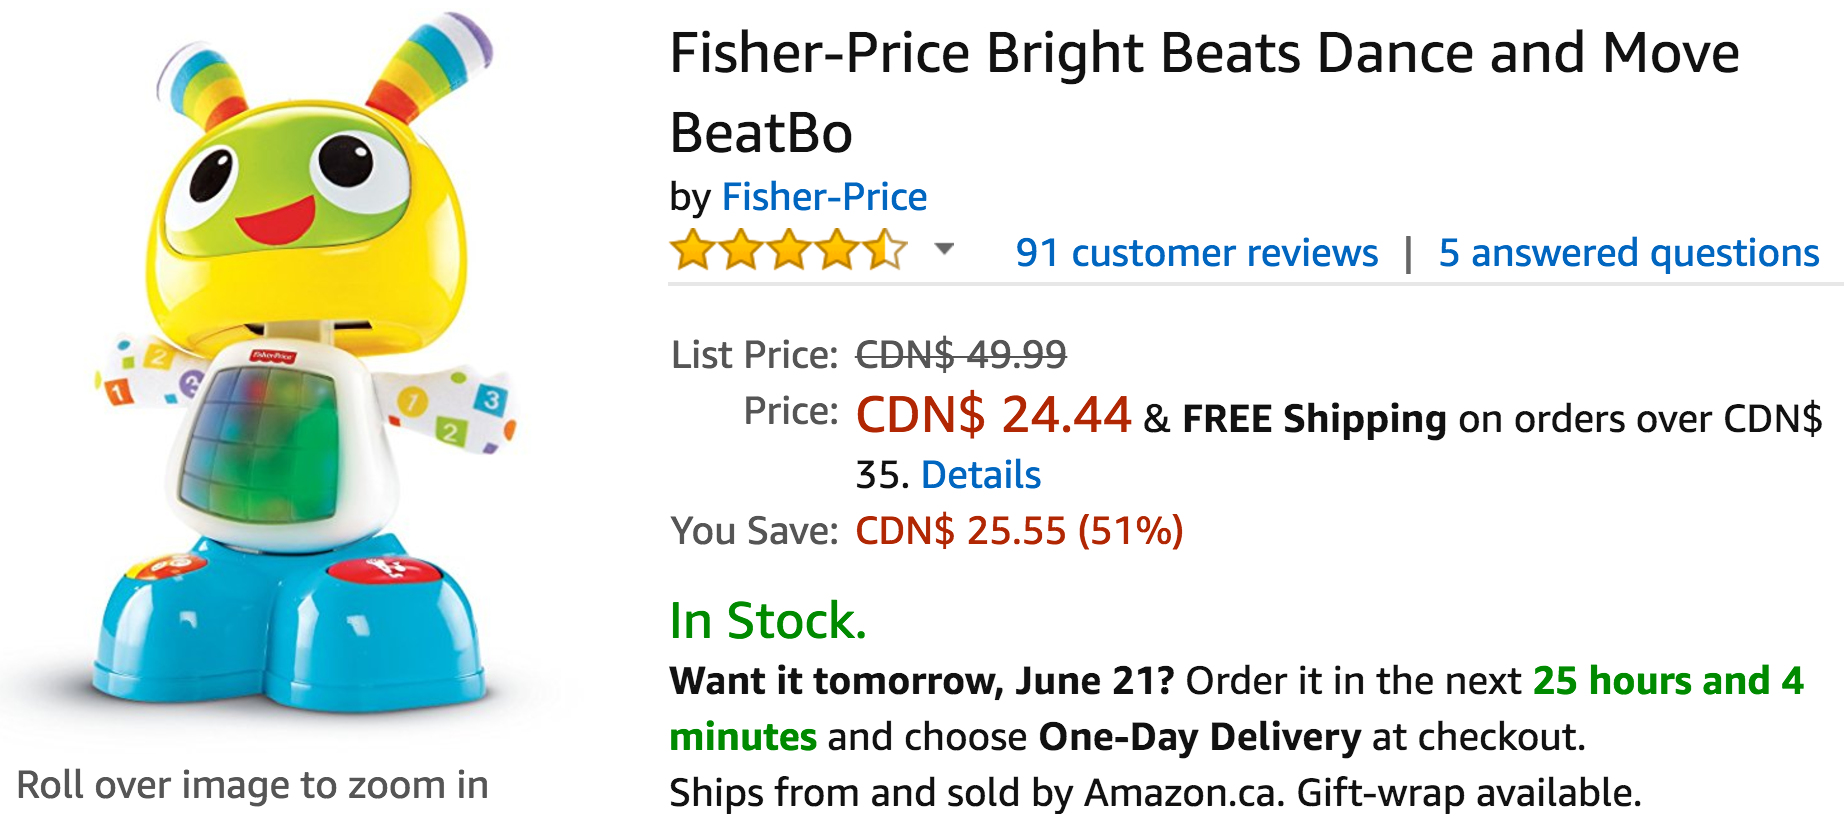 Amazon Canada Deals: Save 51% on Fisher-Price Bright Beats Dance and Move BeatBo & 20% on Microsoft Xbox LIVE 3 Month Gold Membership